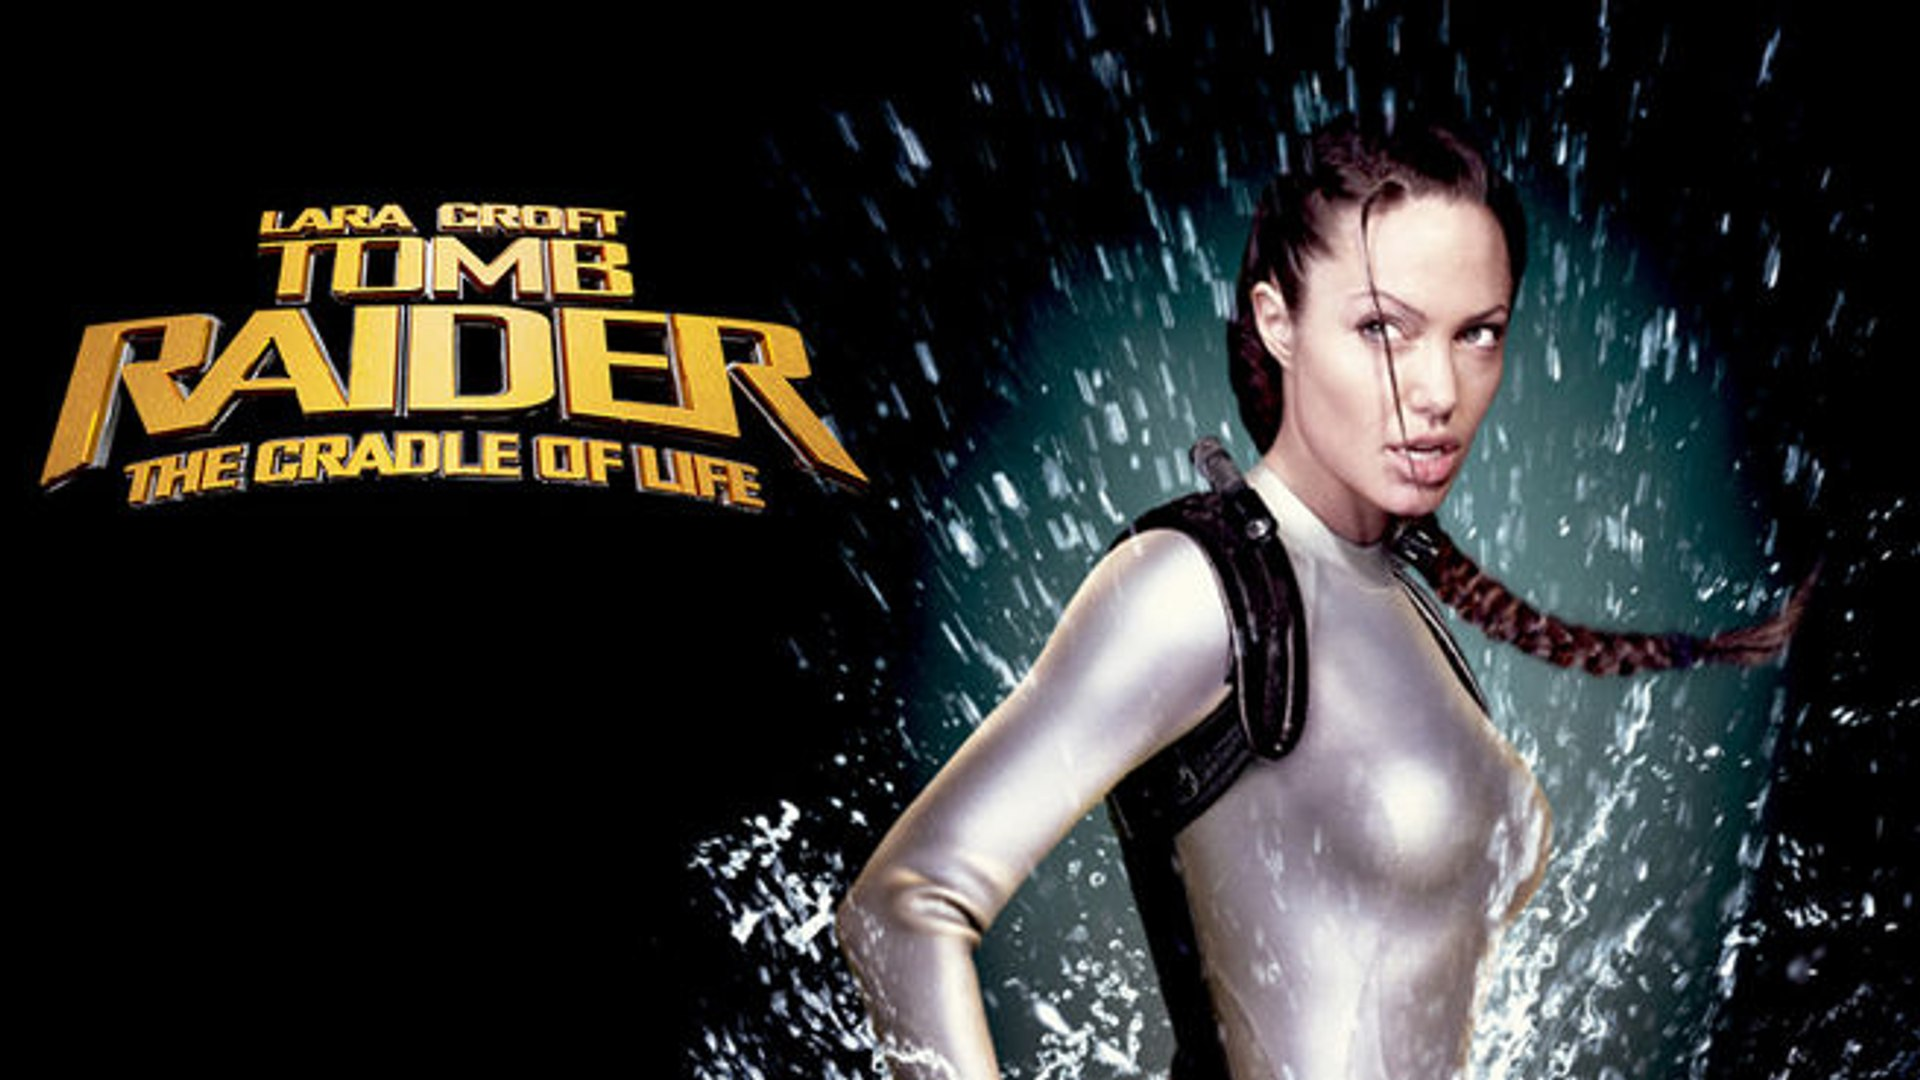 Lara Croft Tomb Raider The Cradle Of Life Movie 2003 Angelina Jolie Gerard Butler Ciaran Hinds Video Dailymotion